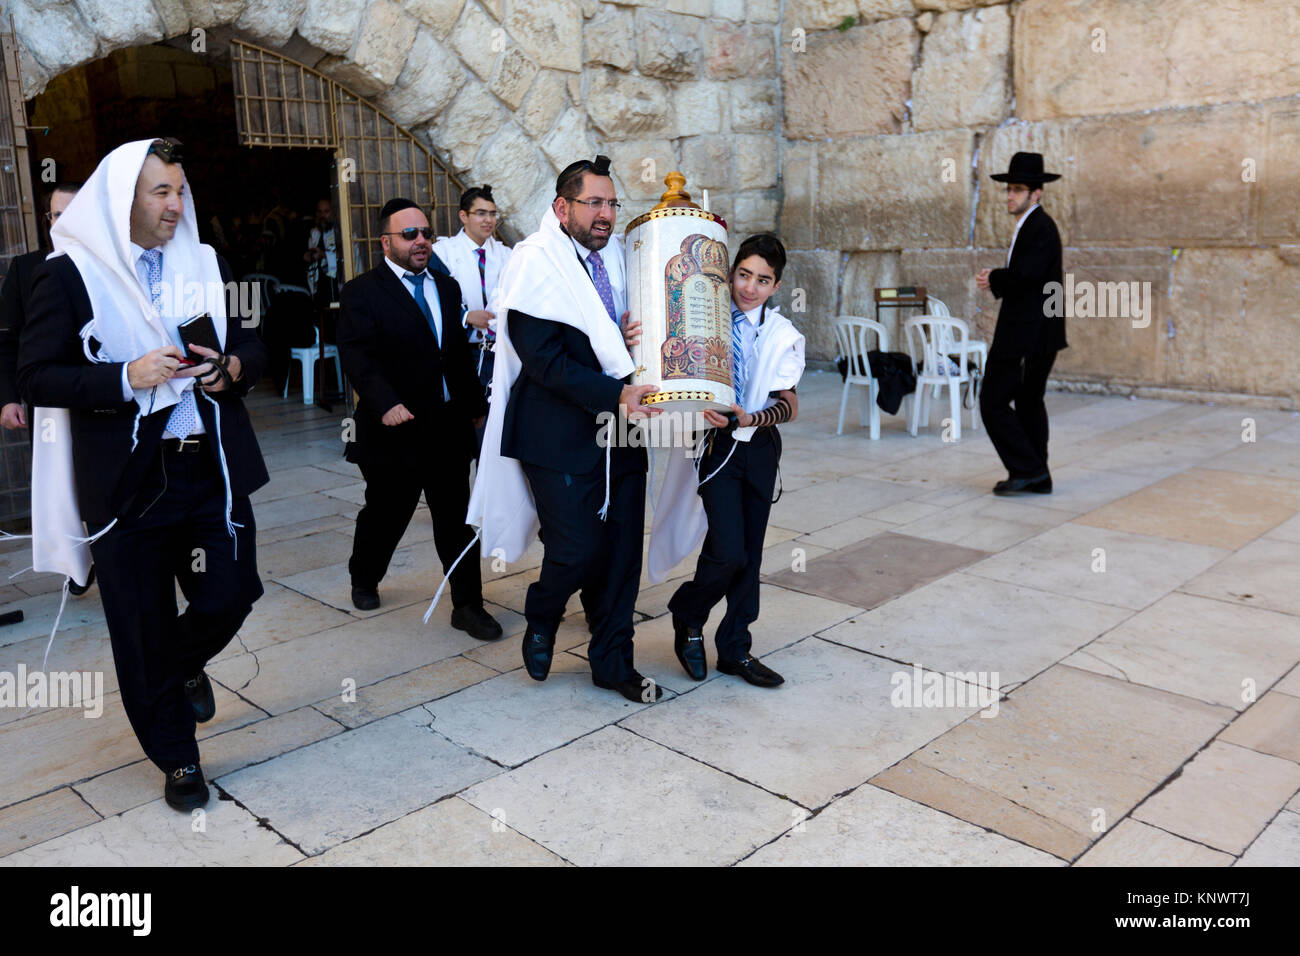 Celebrating the boy's attainment of religious adulthood or the Bar Mitzvah celebration at the Western Wall in - Stock Image